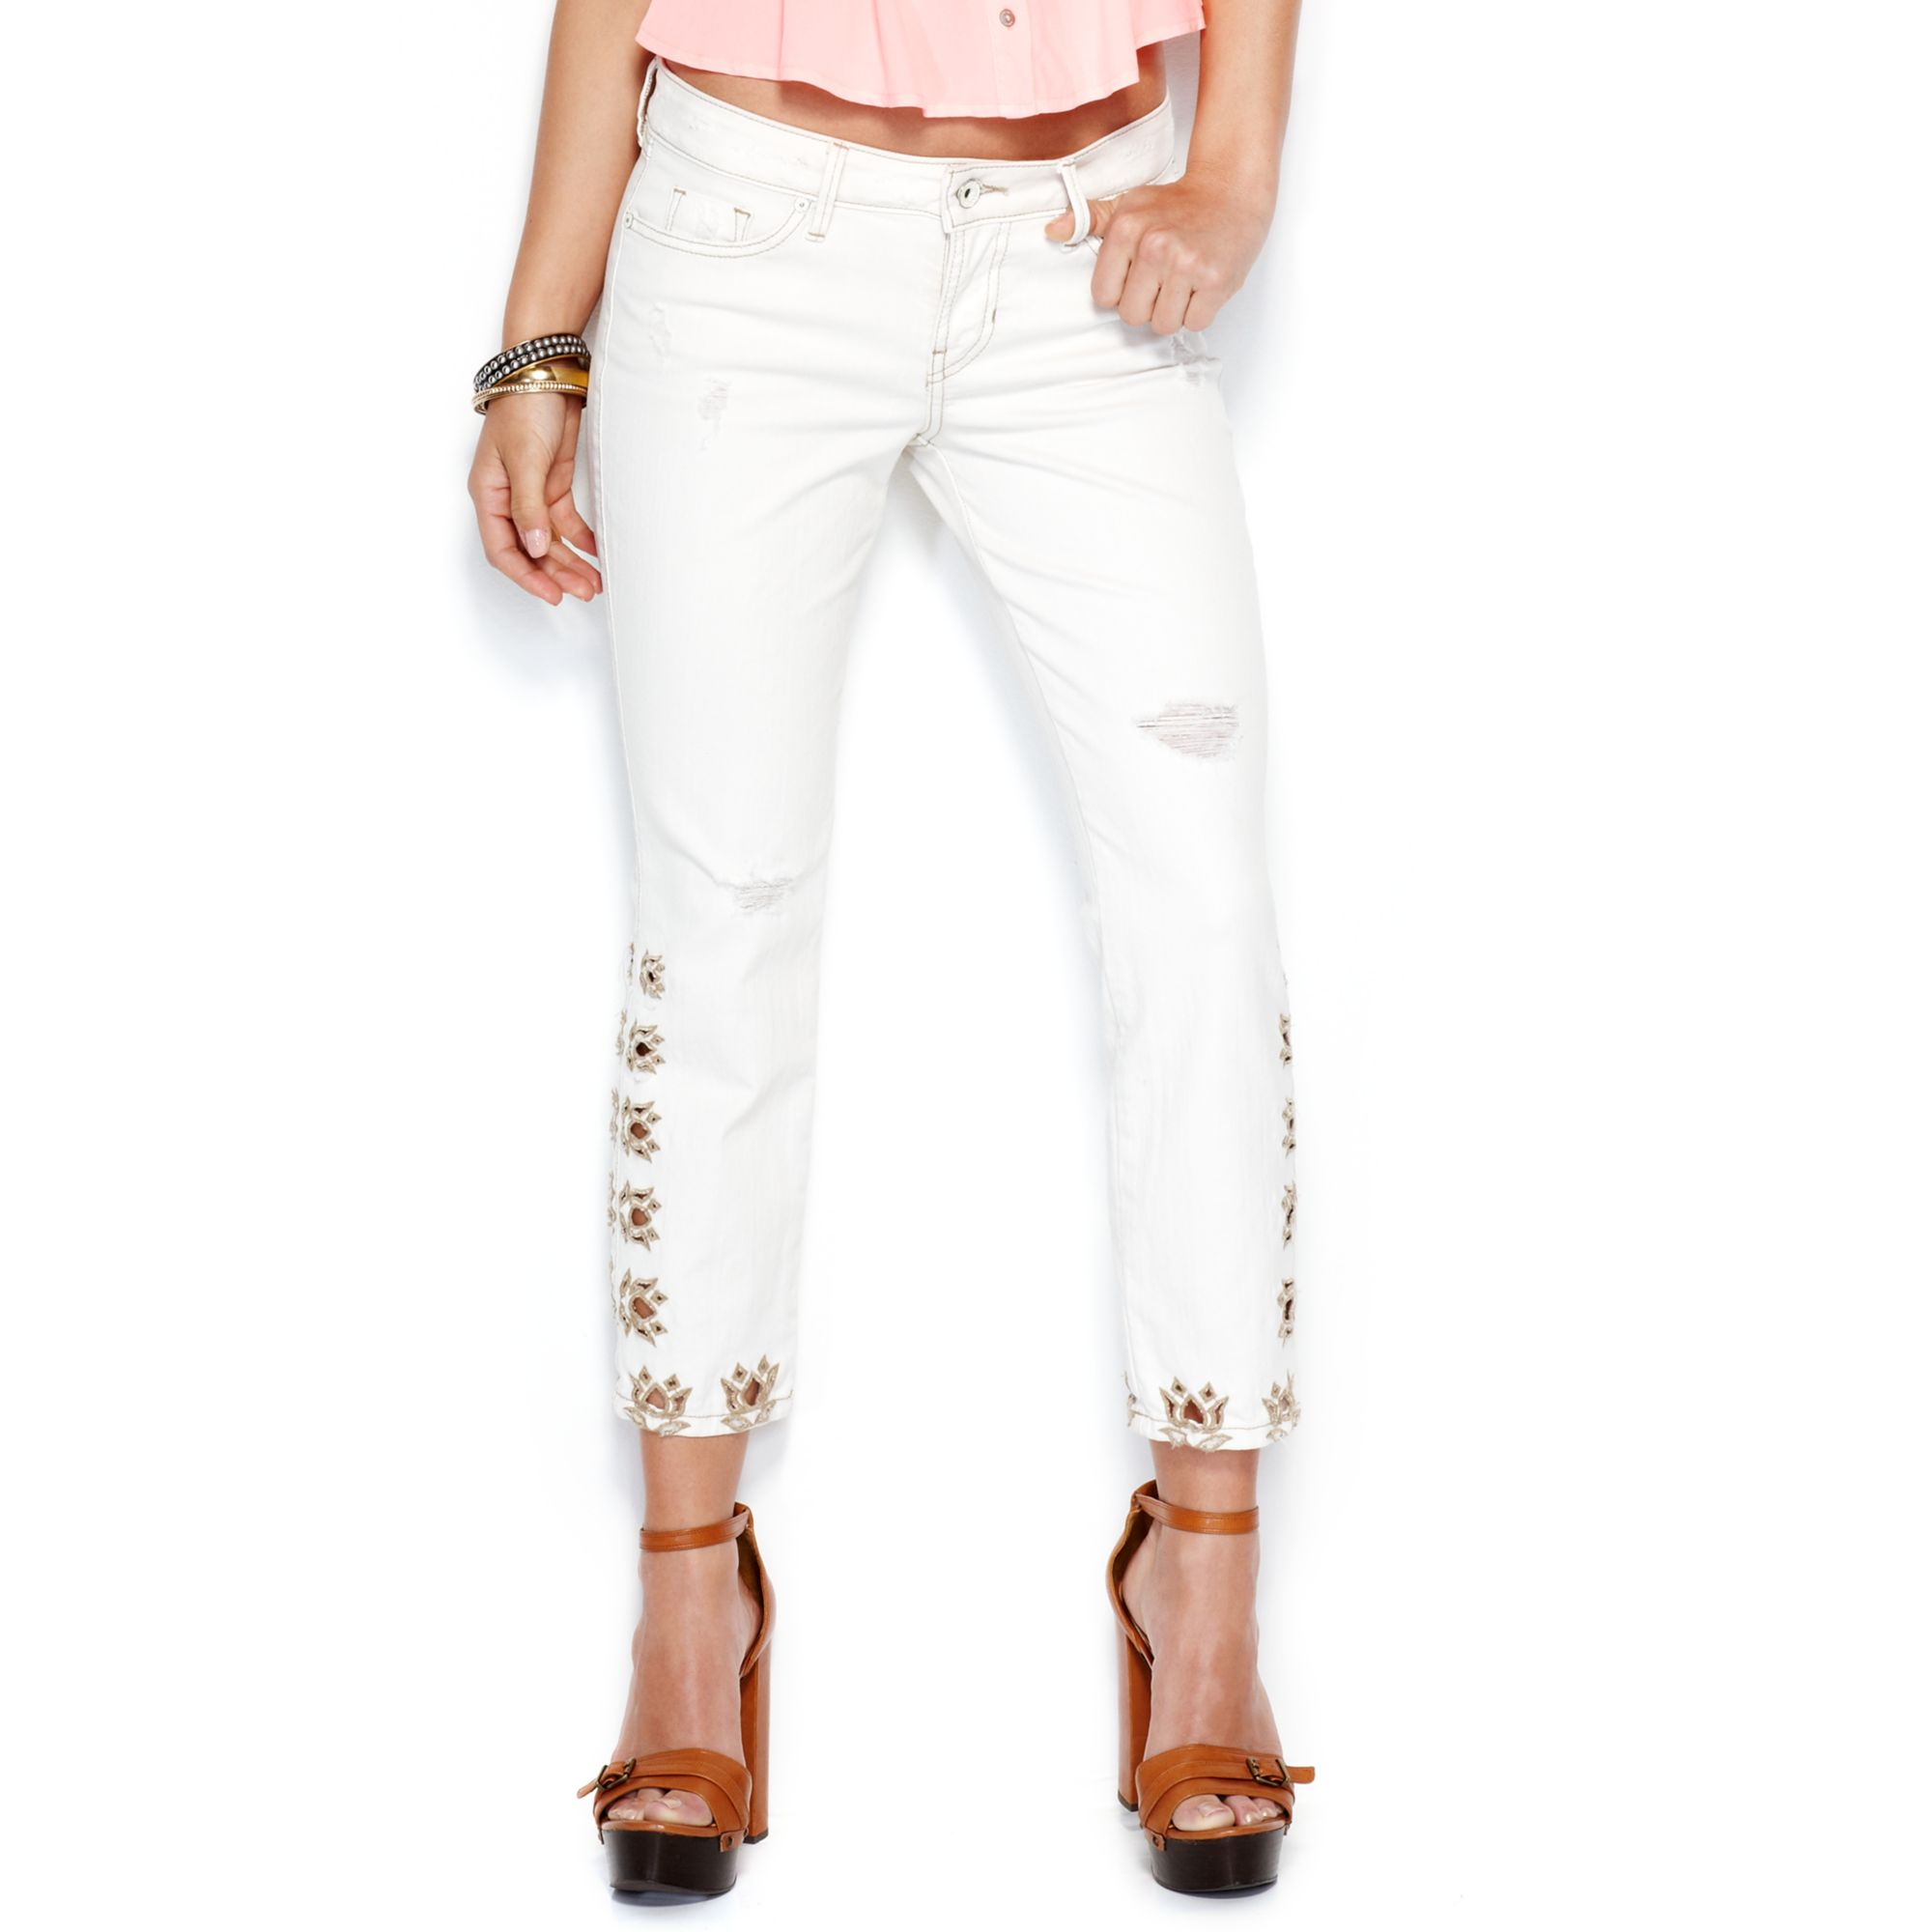 Guess embroidered cropped jeans in white vintage